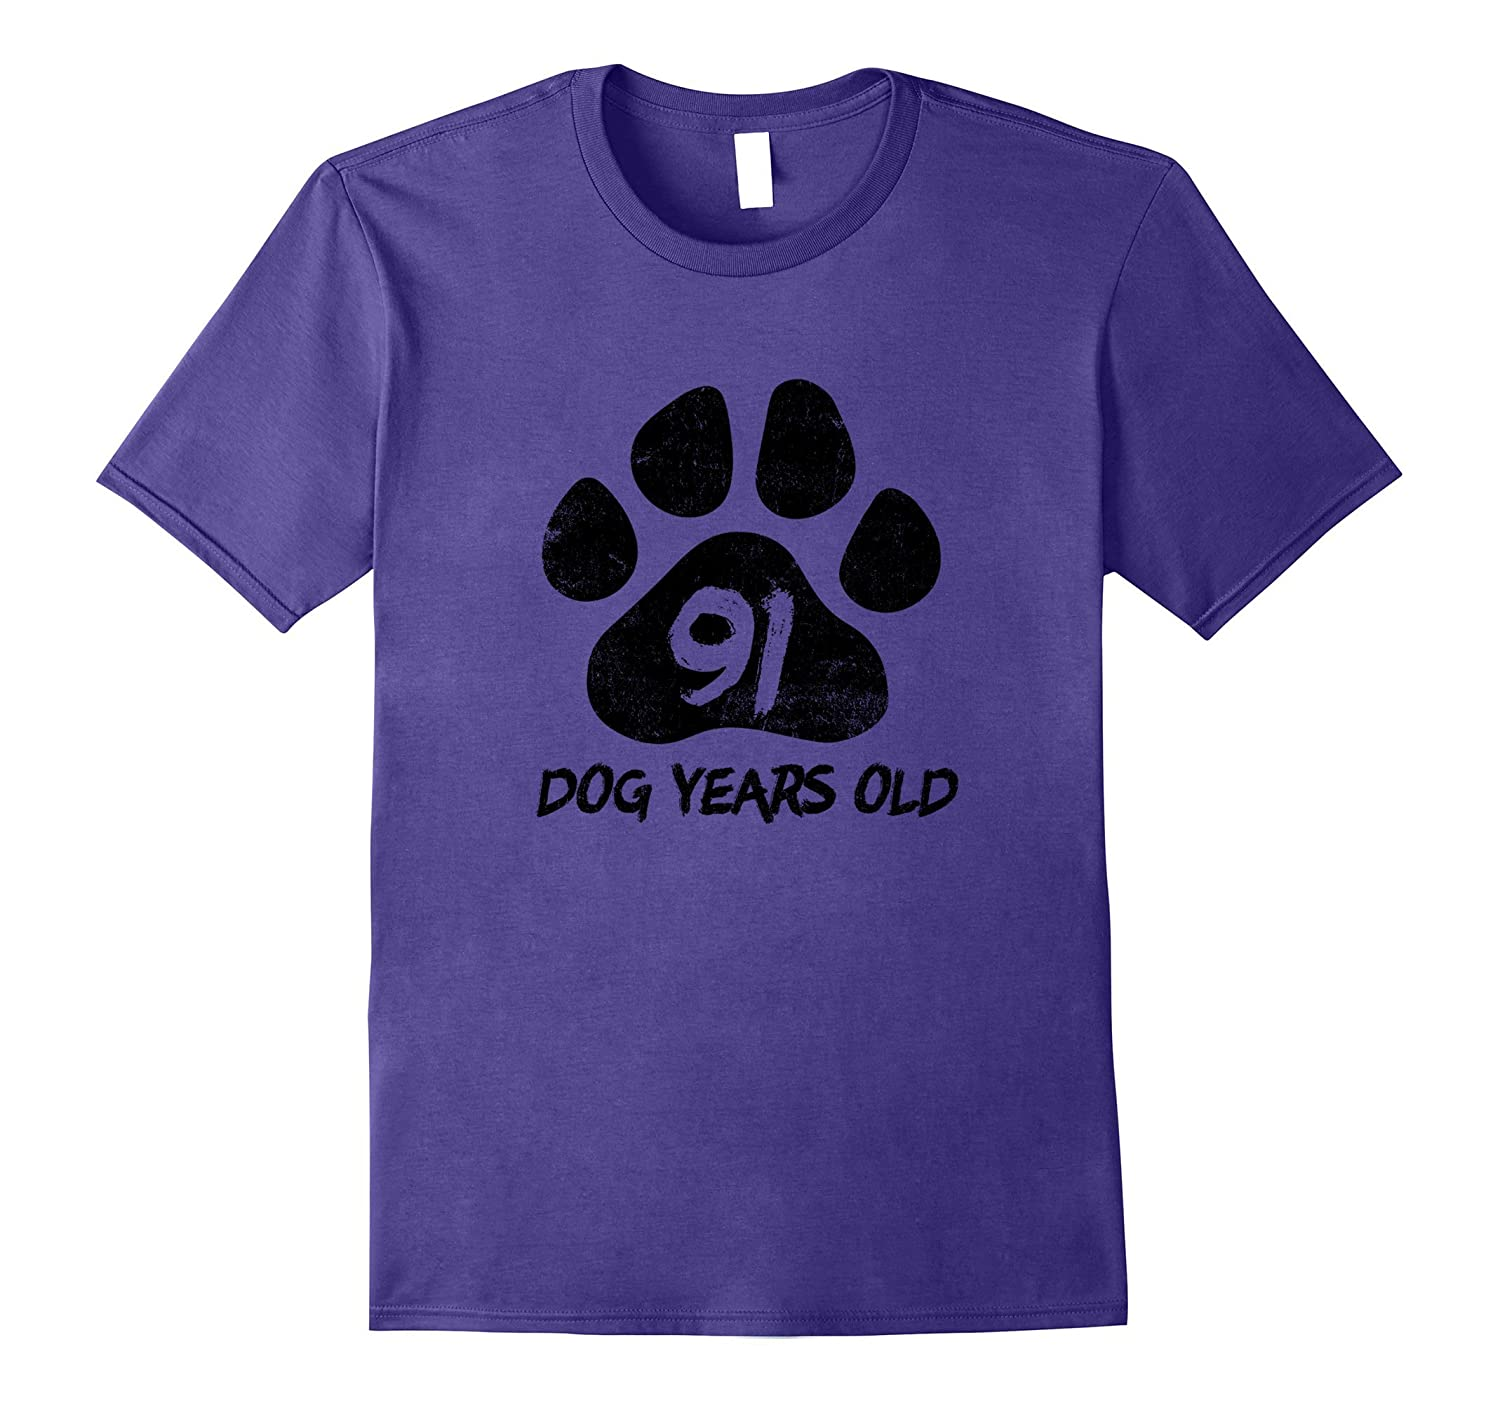 91 Dog Years Old Funny 13th Birthday T-Shirt Teenager Gift-4LVS